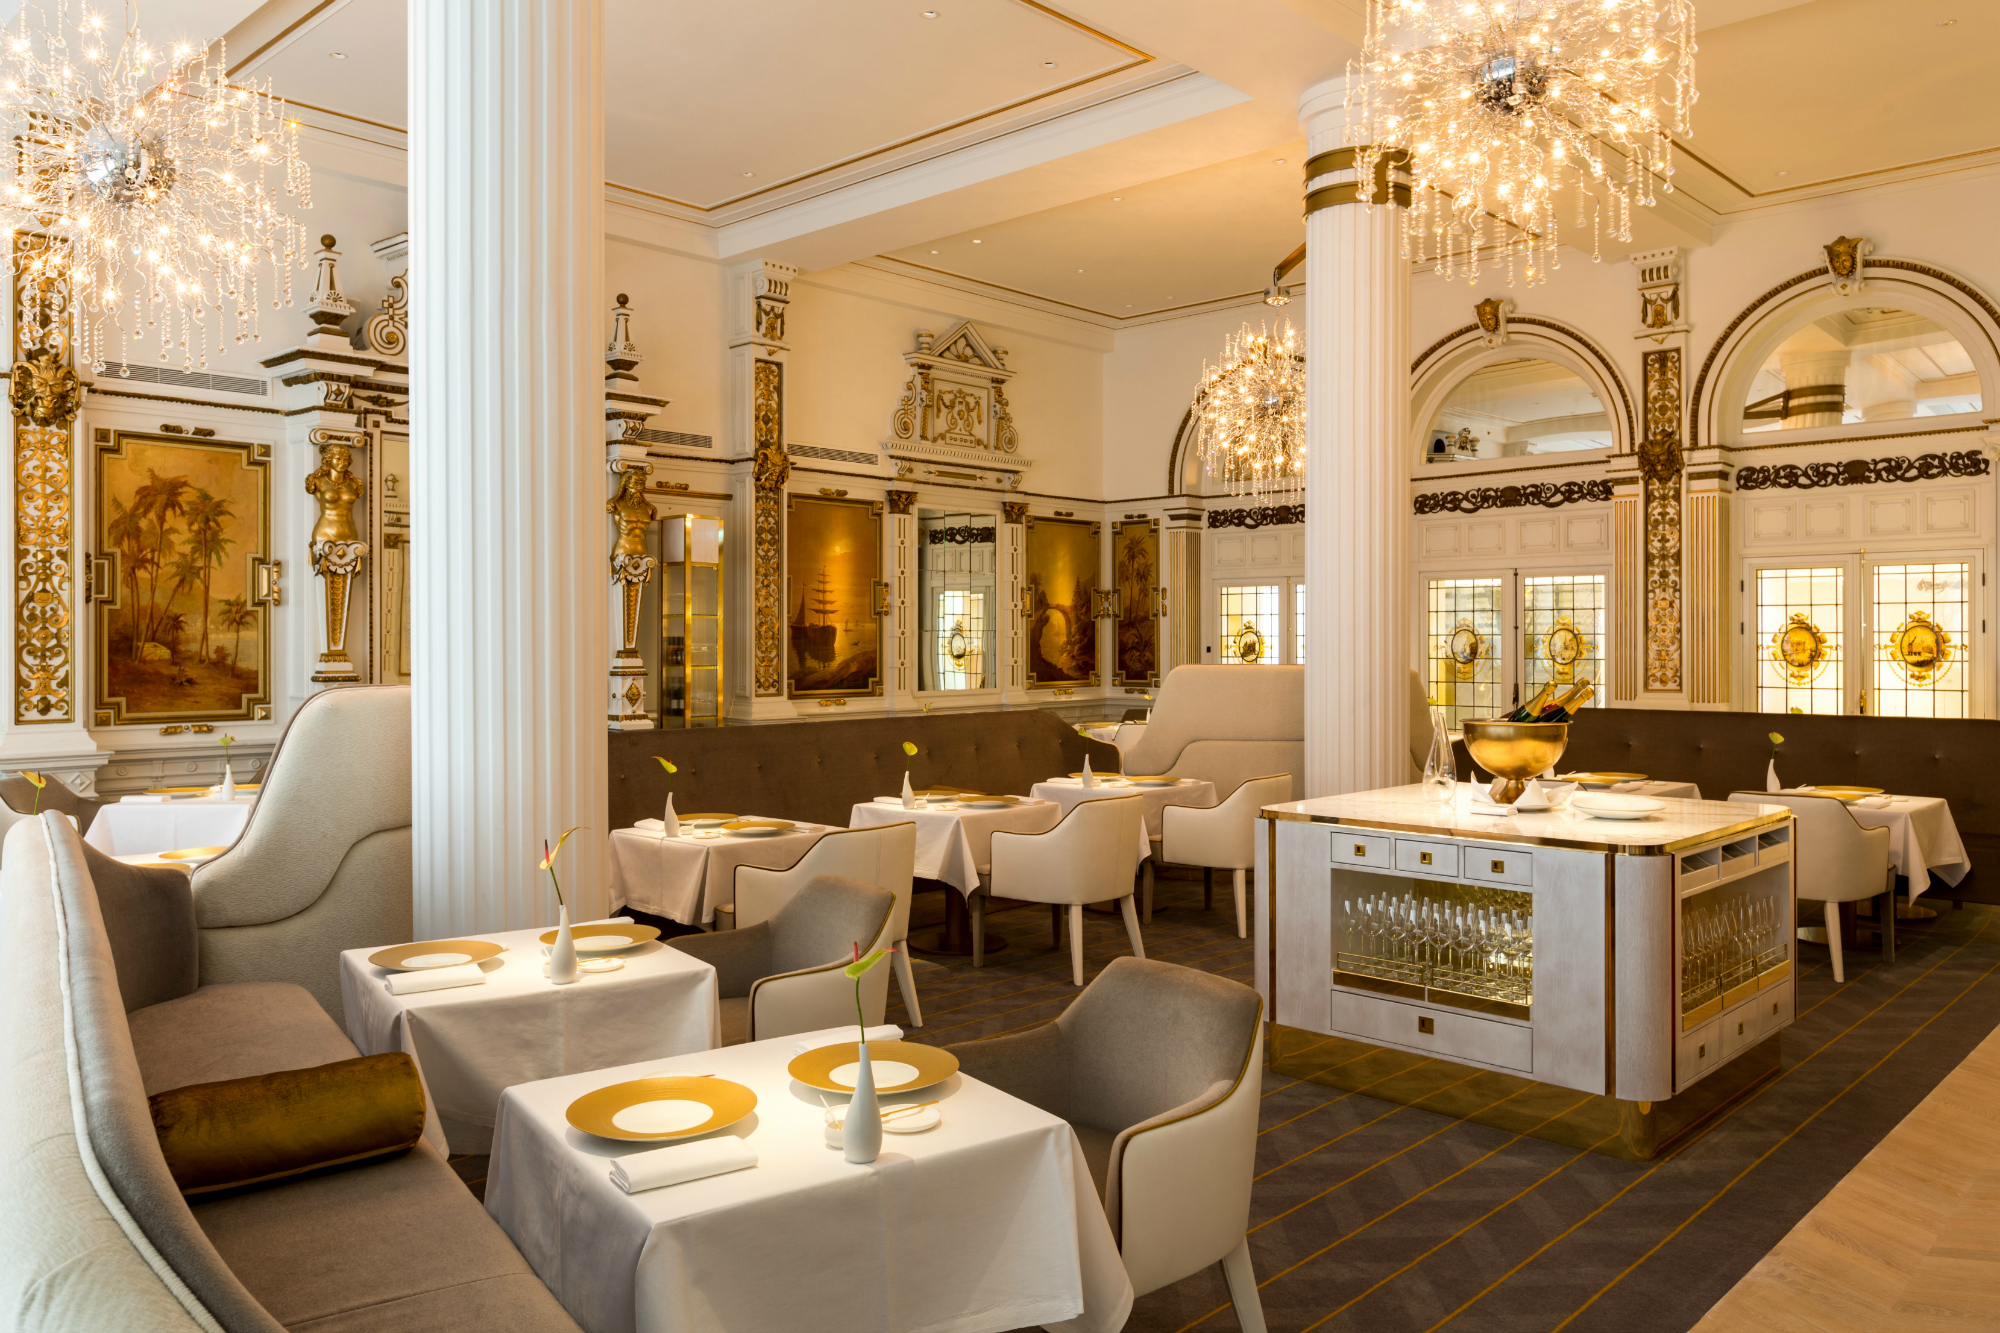 The White Room restaurant with tables